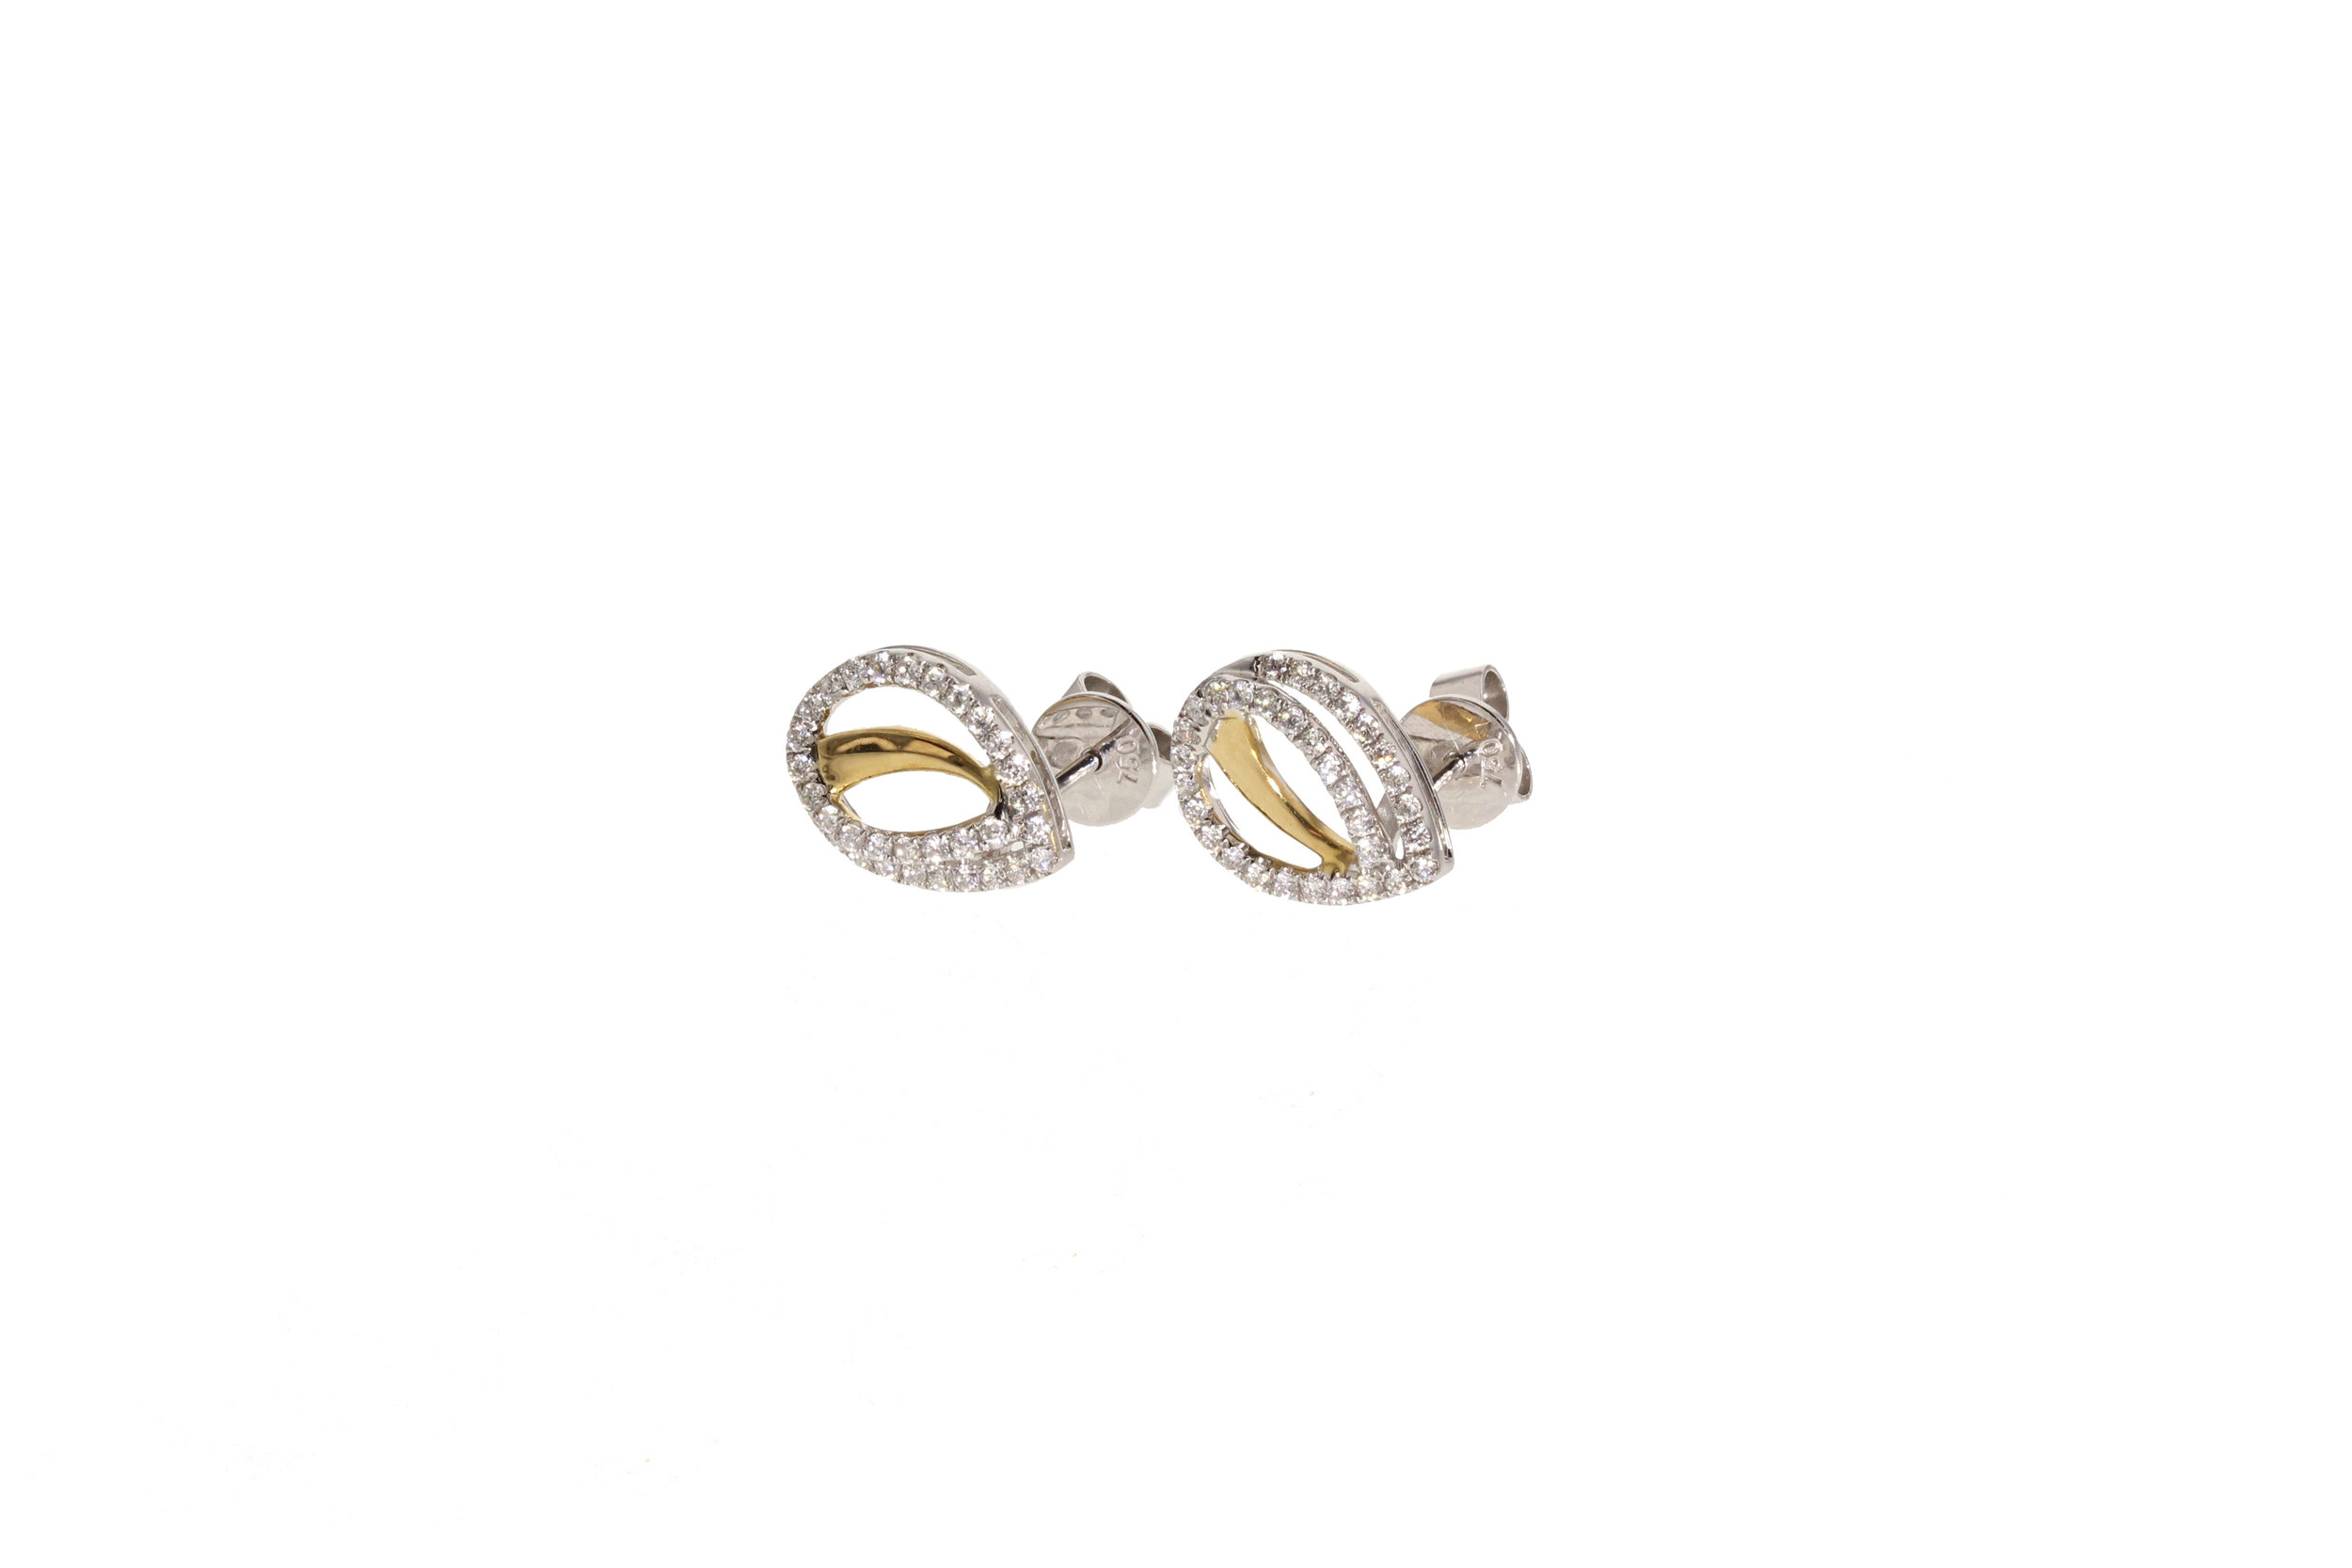 18kt Yellow and White Gold Diamond Pavé Pear Shaped Earrings 0.38 ctw. $2600